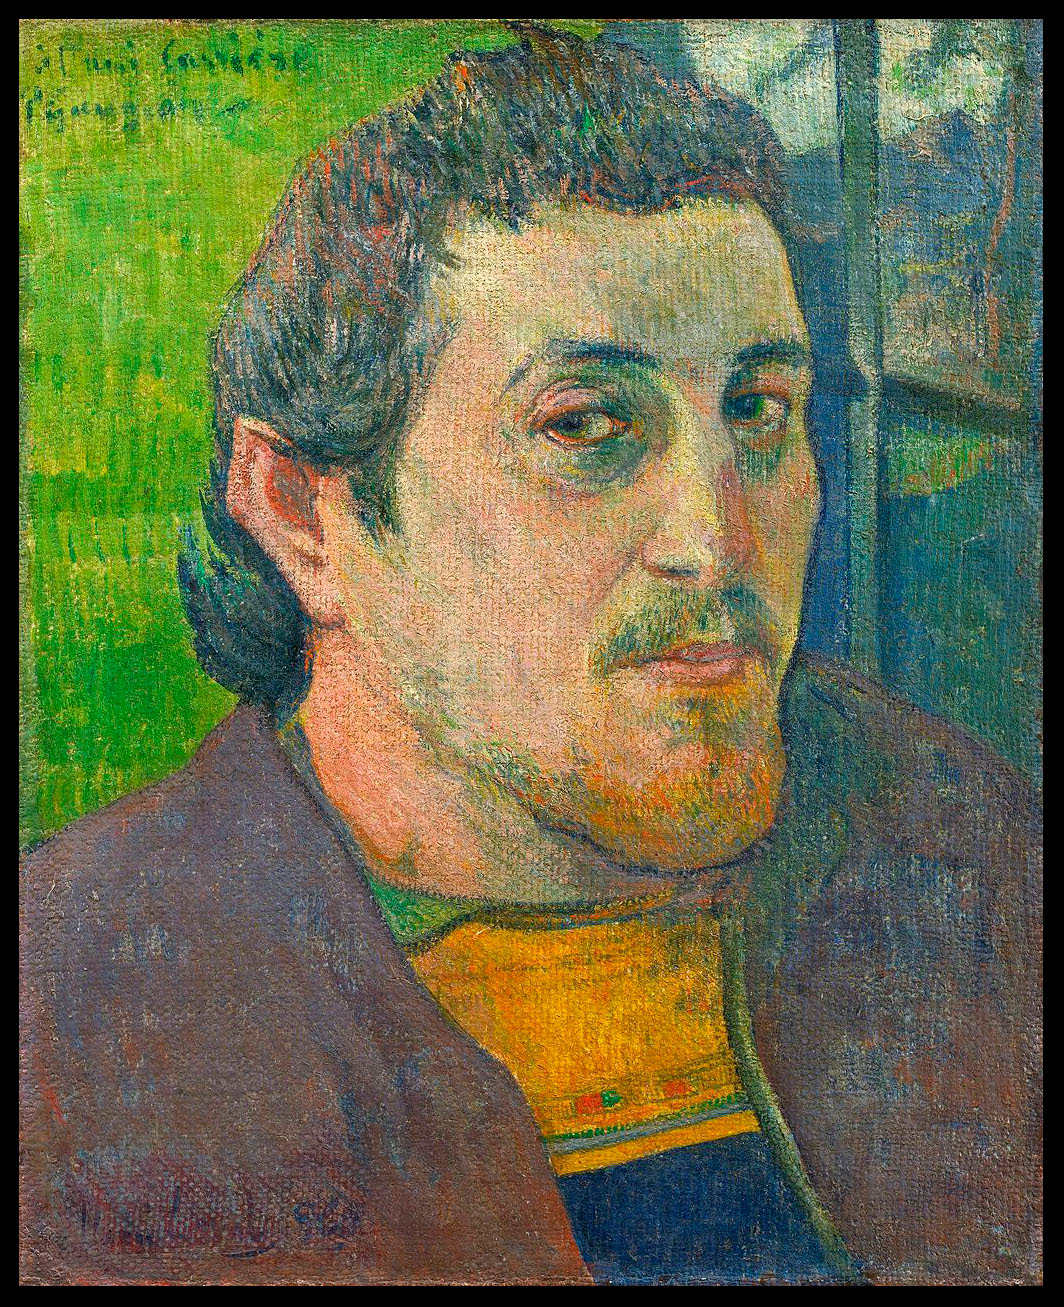 Paul Gauguin: self-portrait at Lezaven, 1888